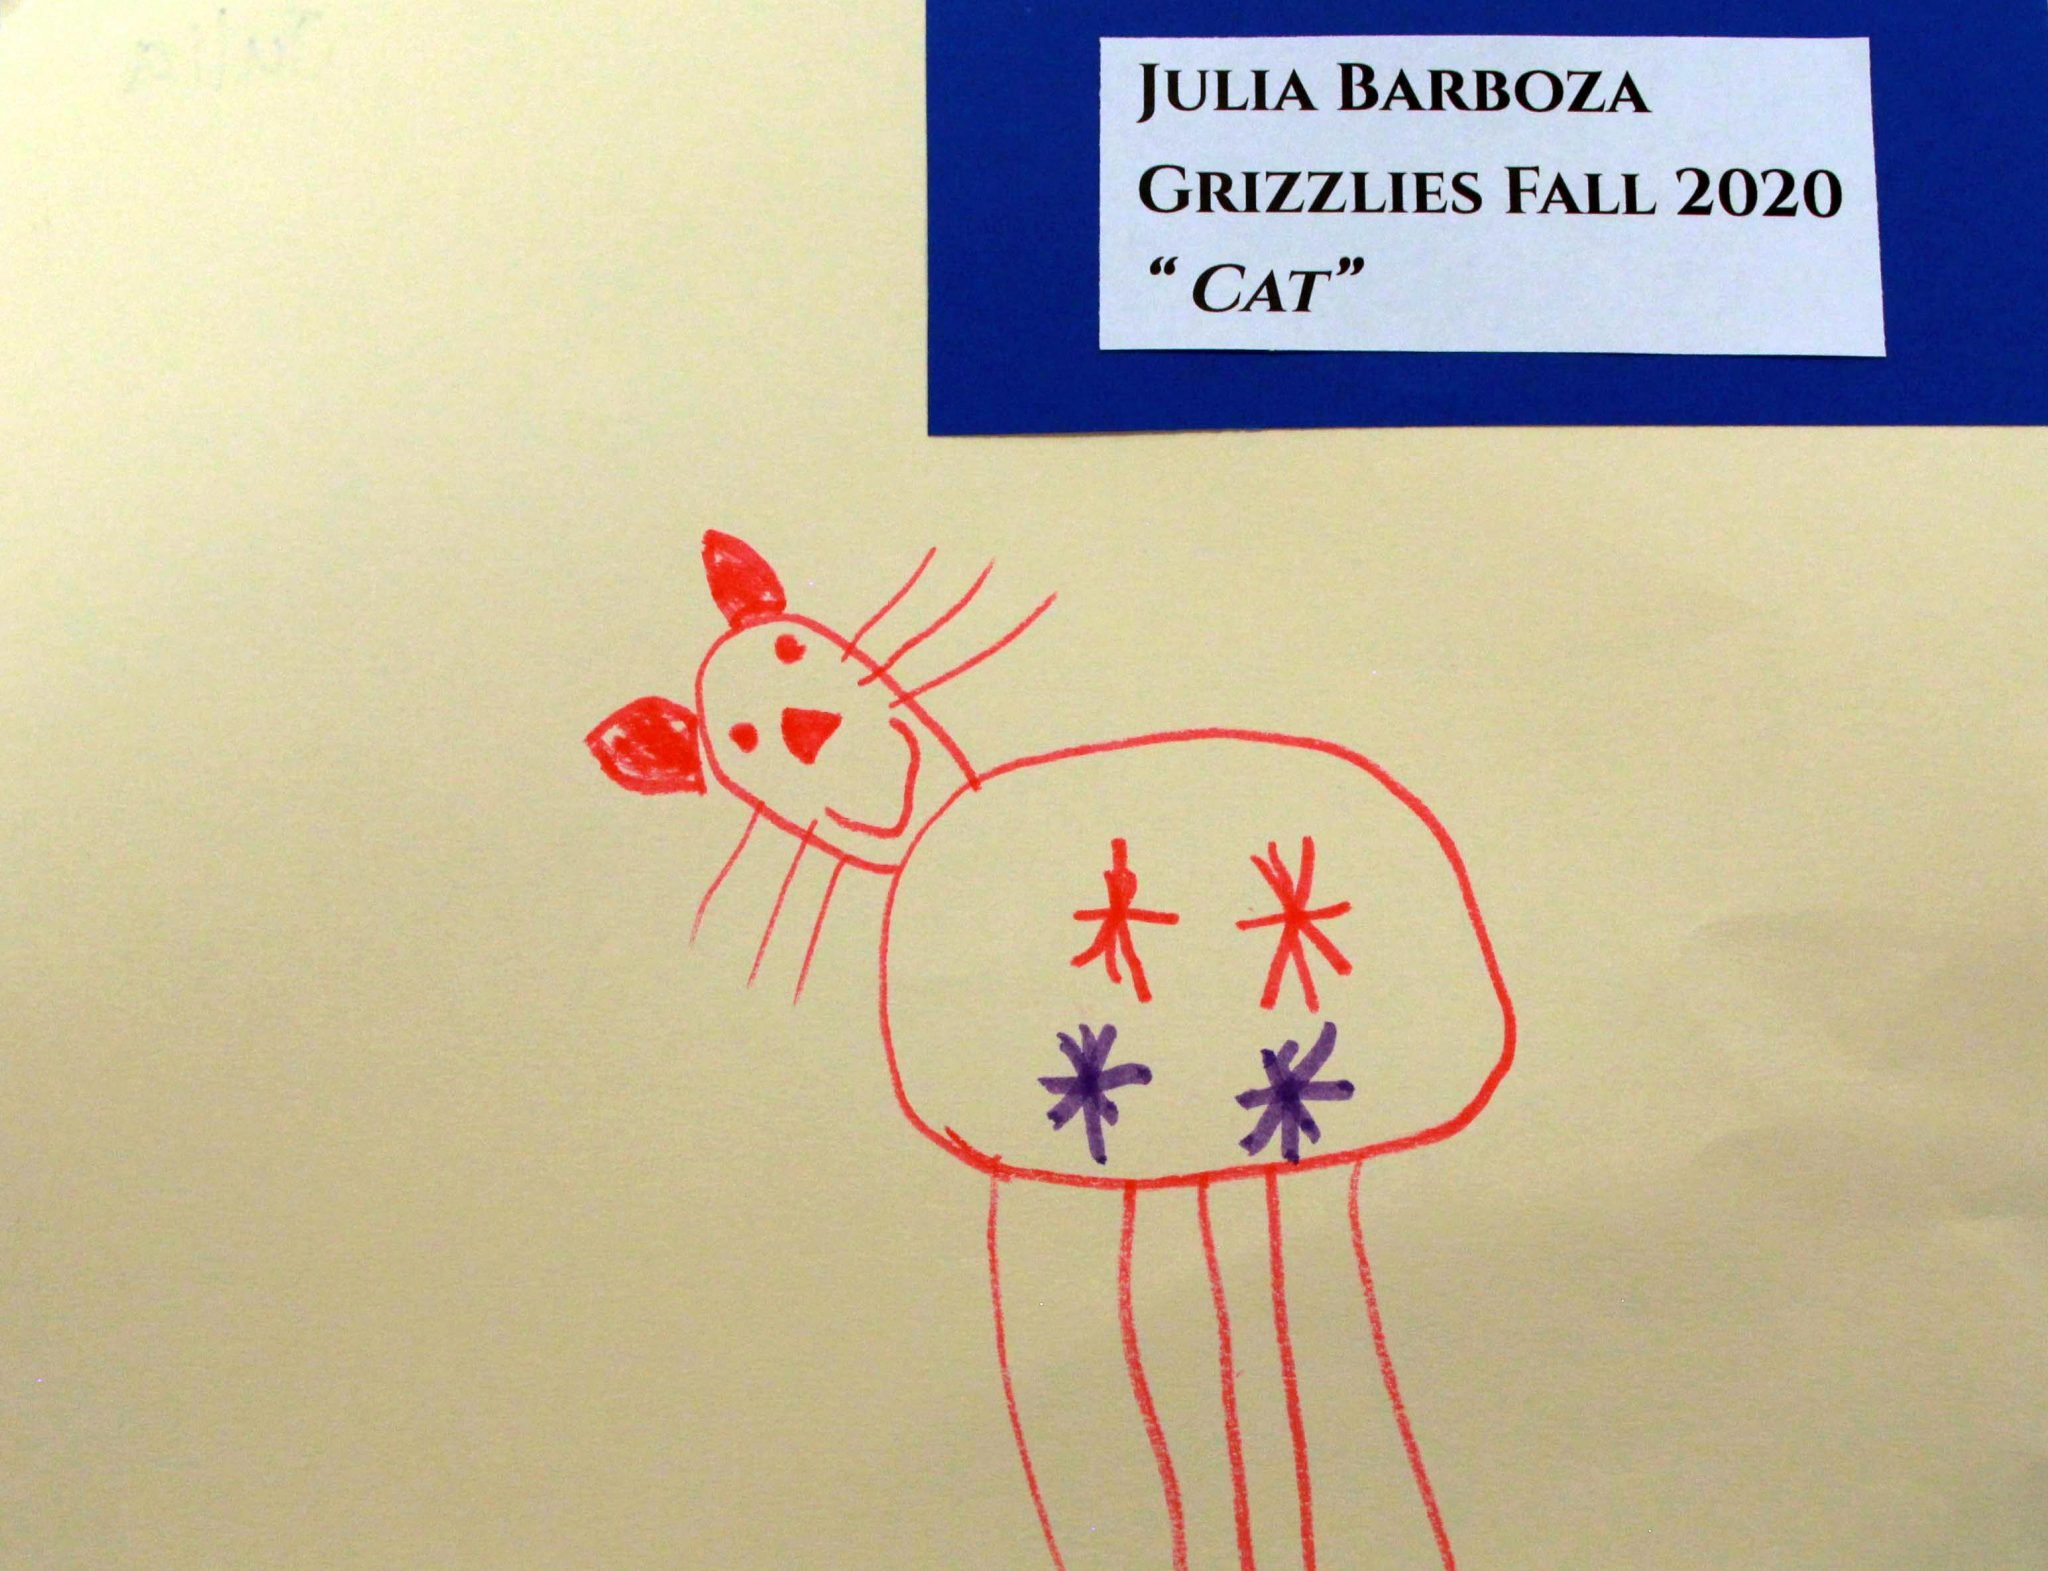 Julia Barboza, of Grizzlies group, drawing, Fall 2020